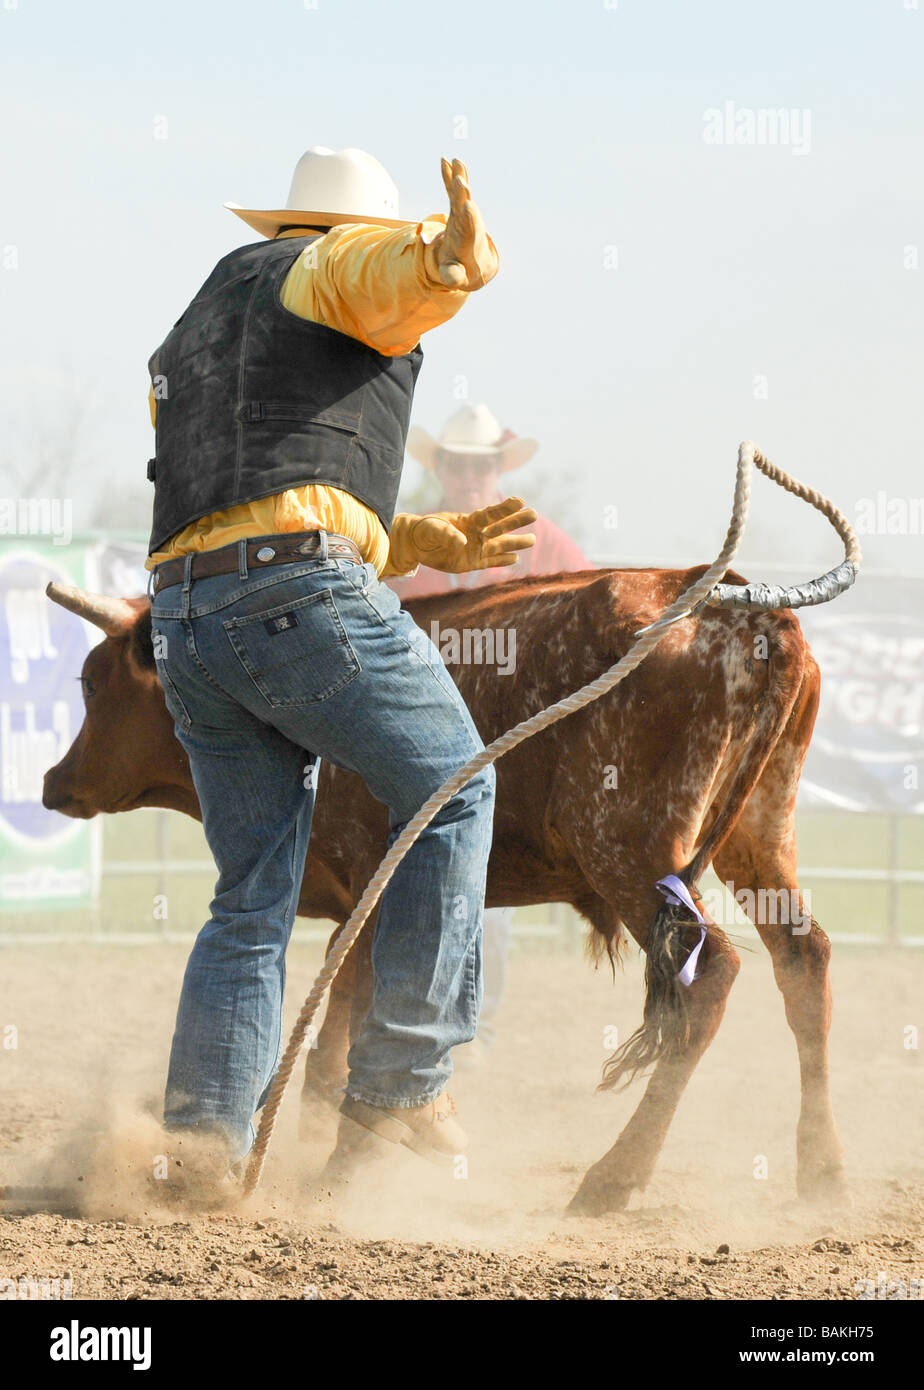 from Miller gay rodeo photos